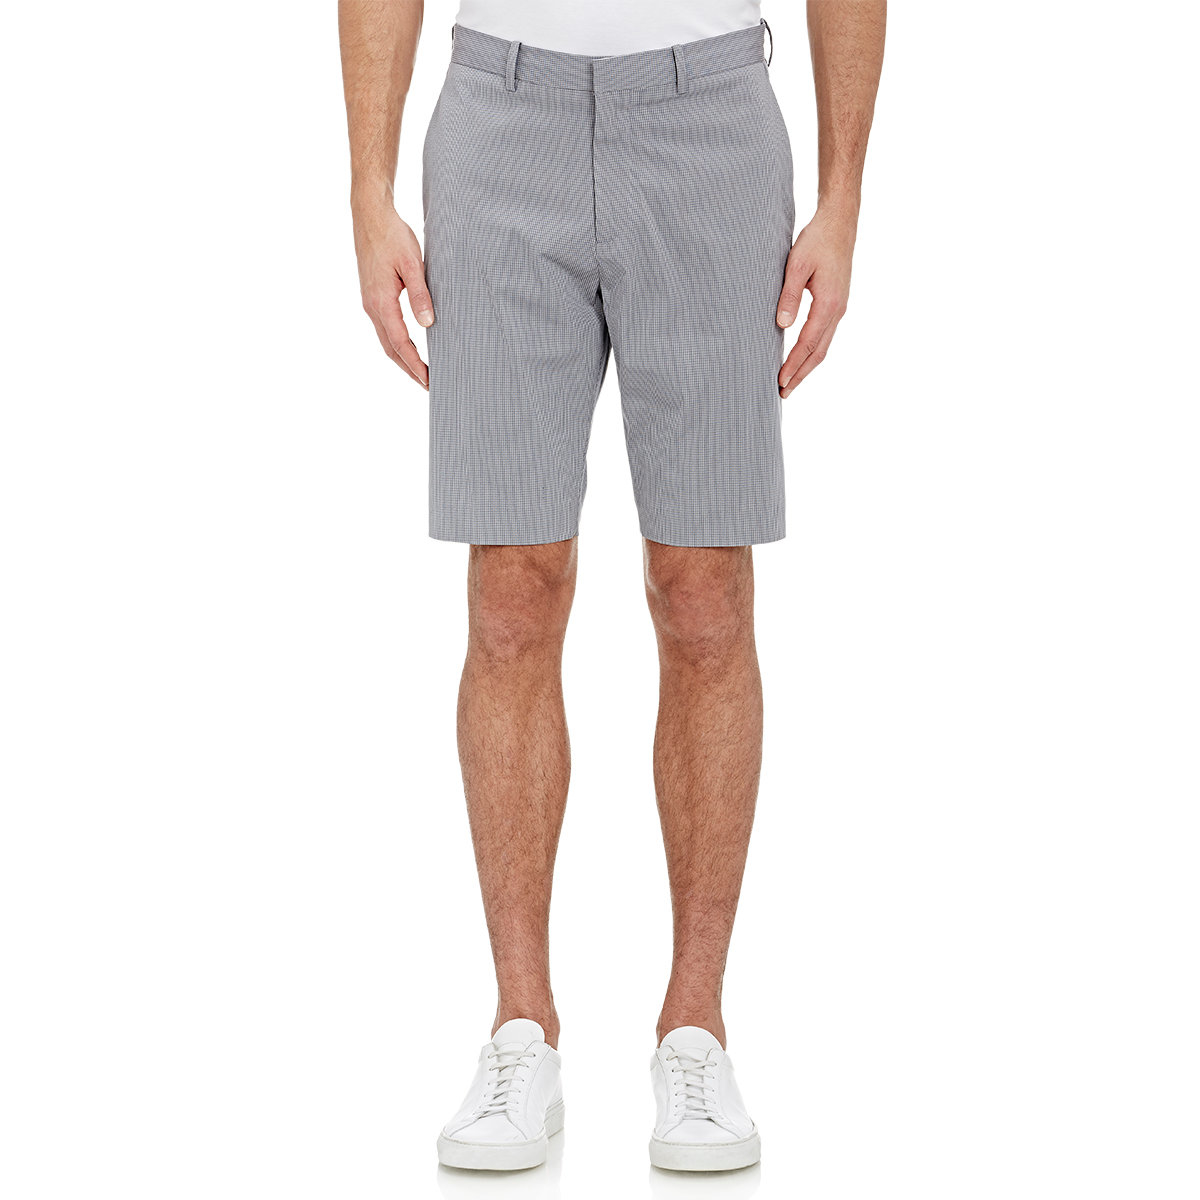 Shop Micros Apparel for men and boys. You can find a great selection of flannels, jogger pants, waist shorts, and more at Tillys.